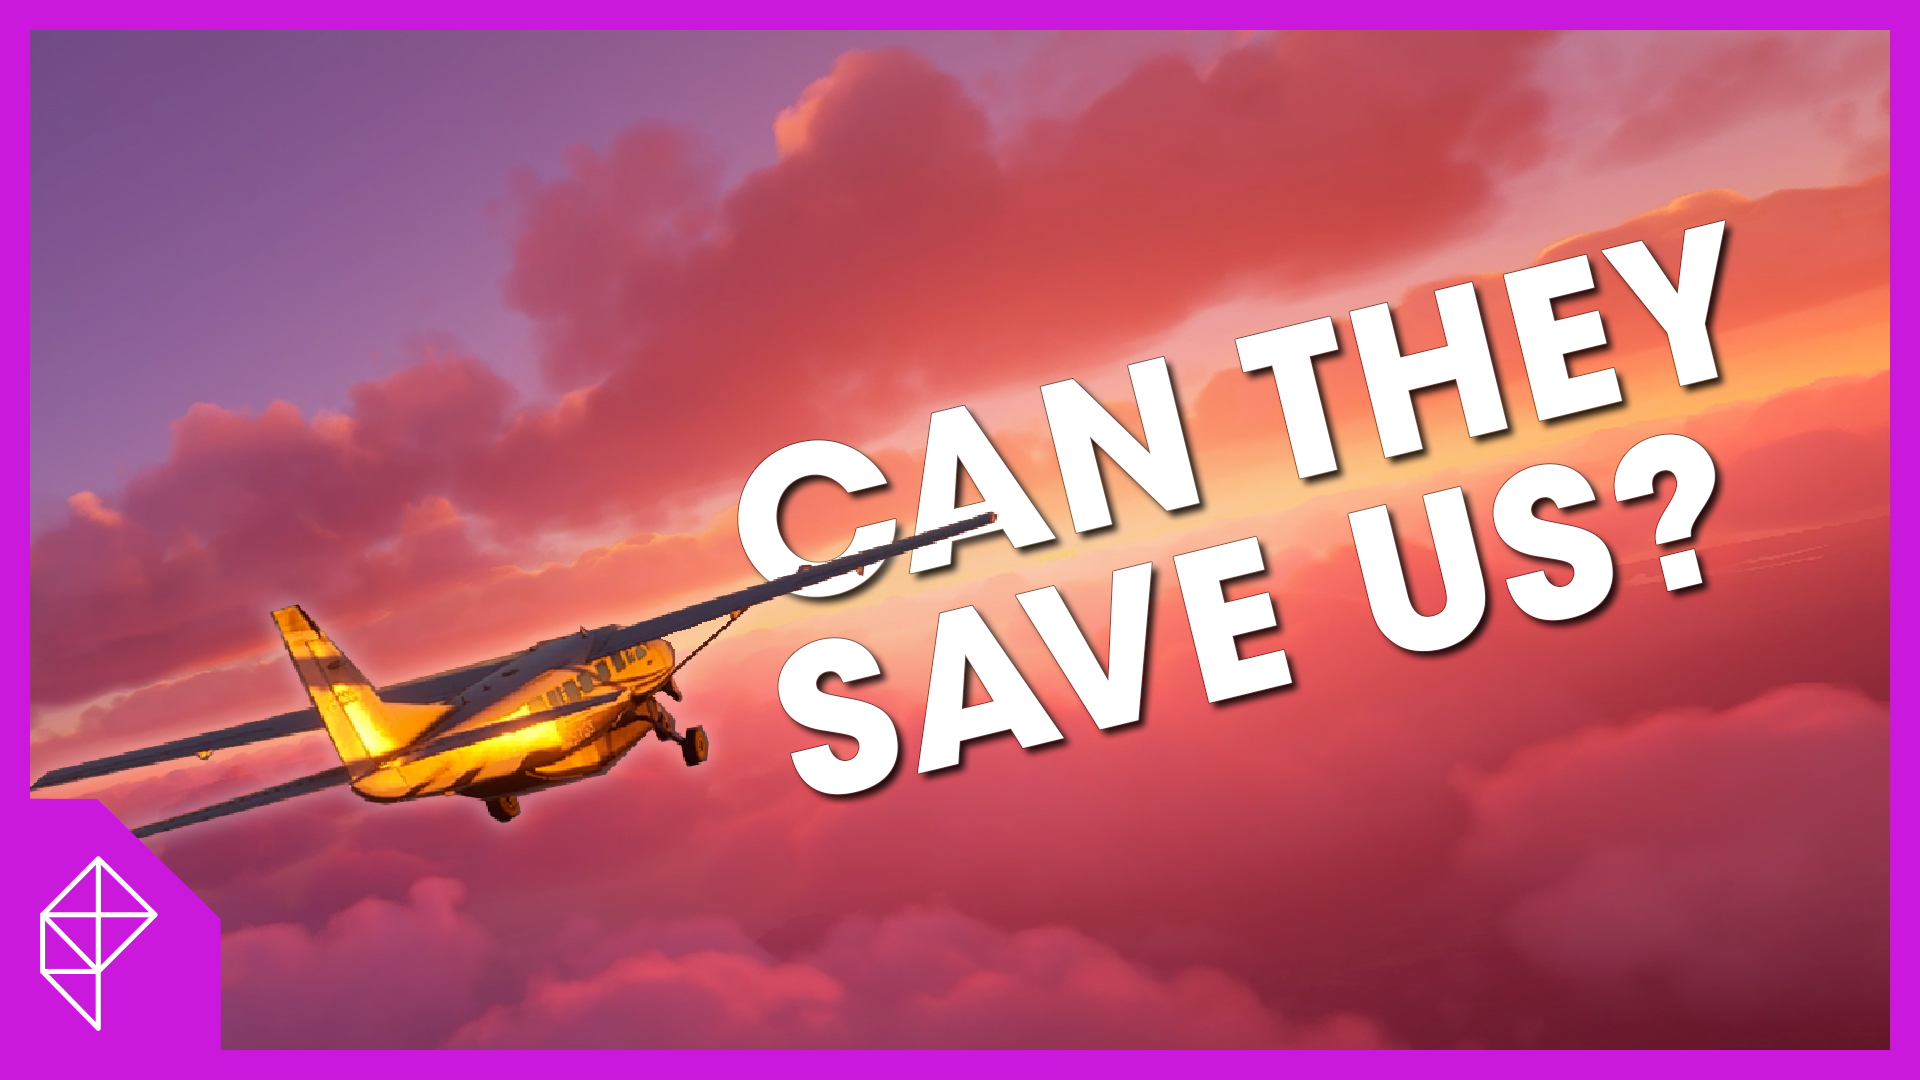 A plane on a beautiful sunset horizon is flying towards the words CAN THEY SAVE US